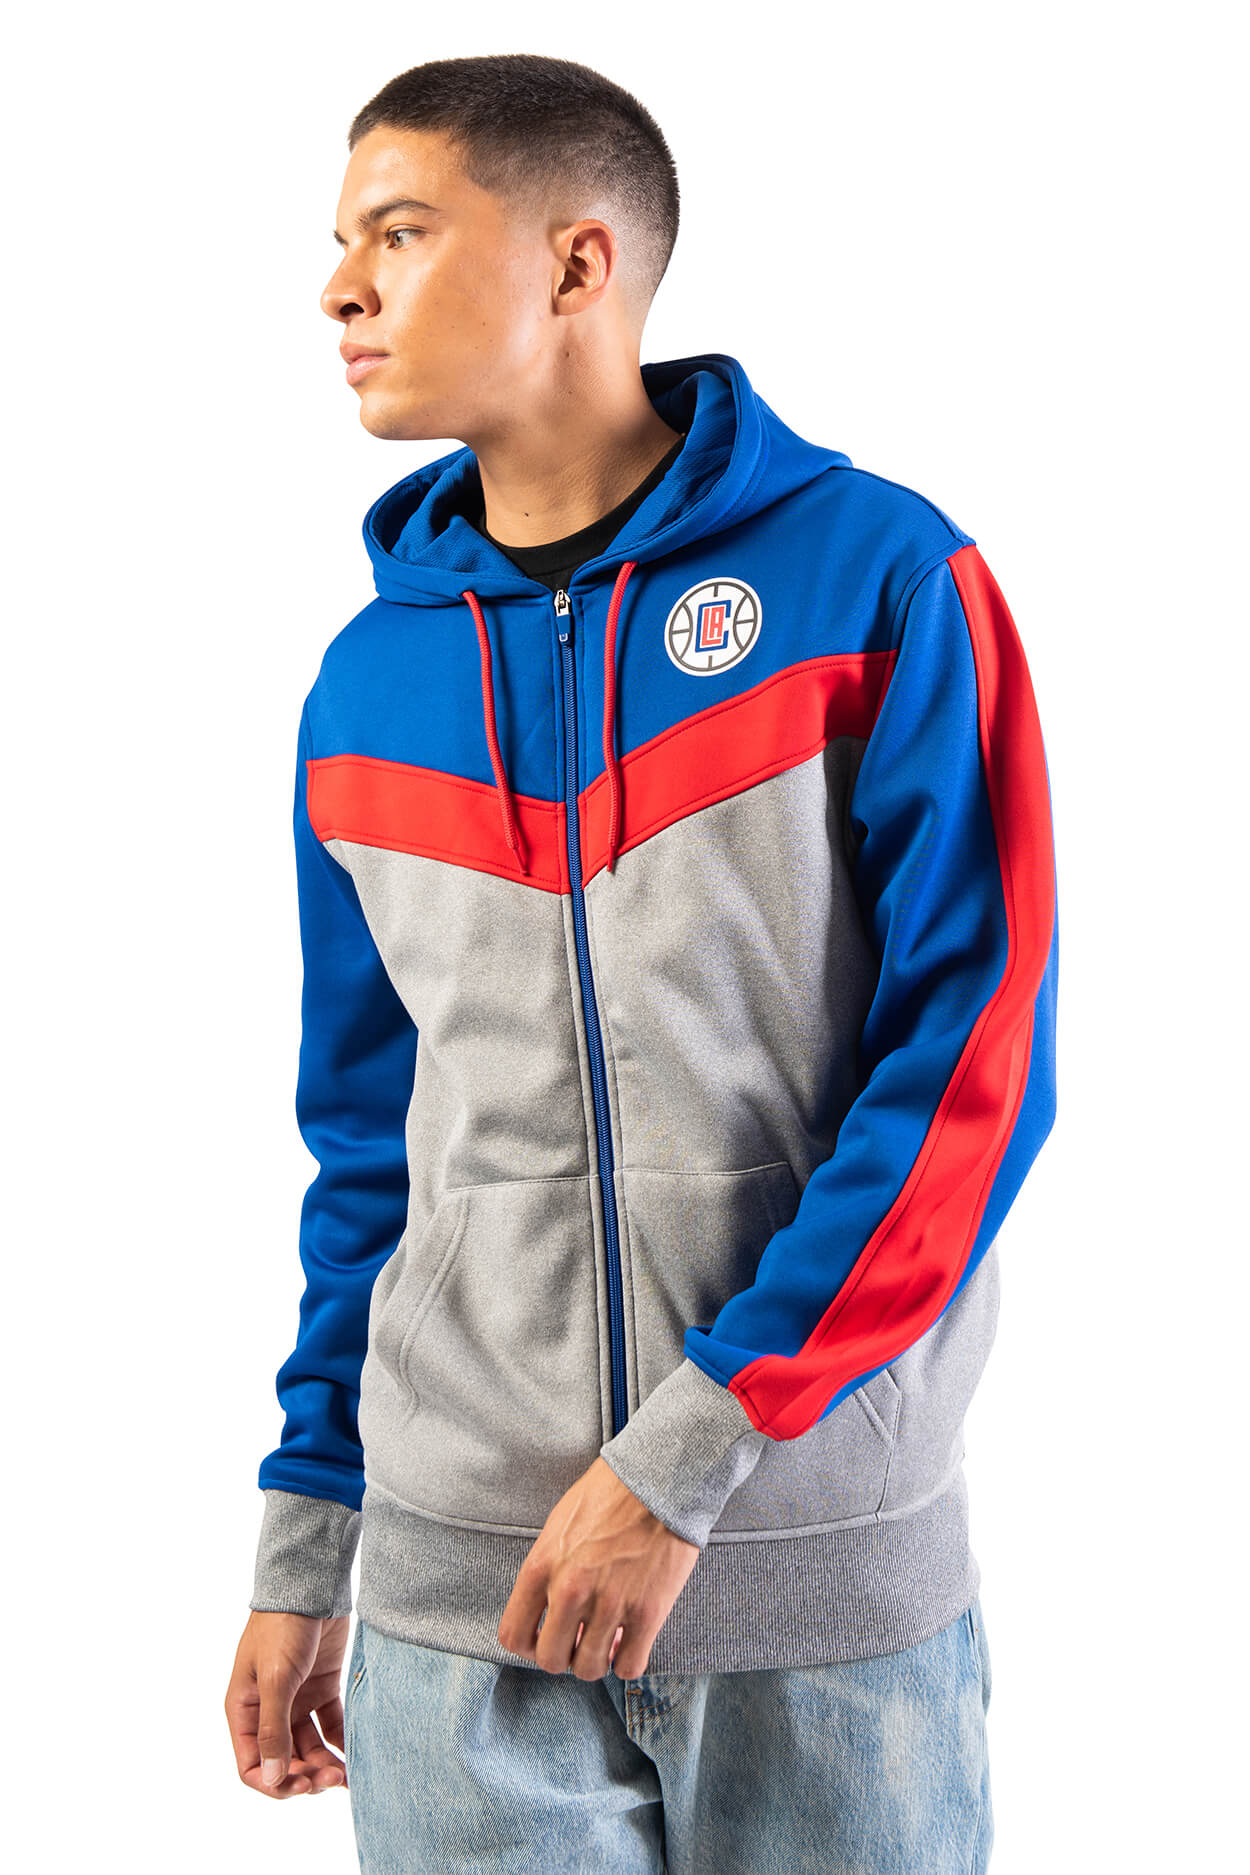 NBA Los Angeles Clippers Men's Full Zip Hoodie|Los Angeles Clippers